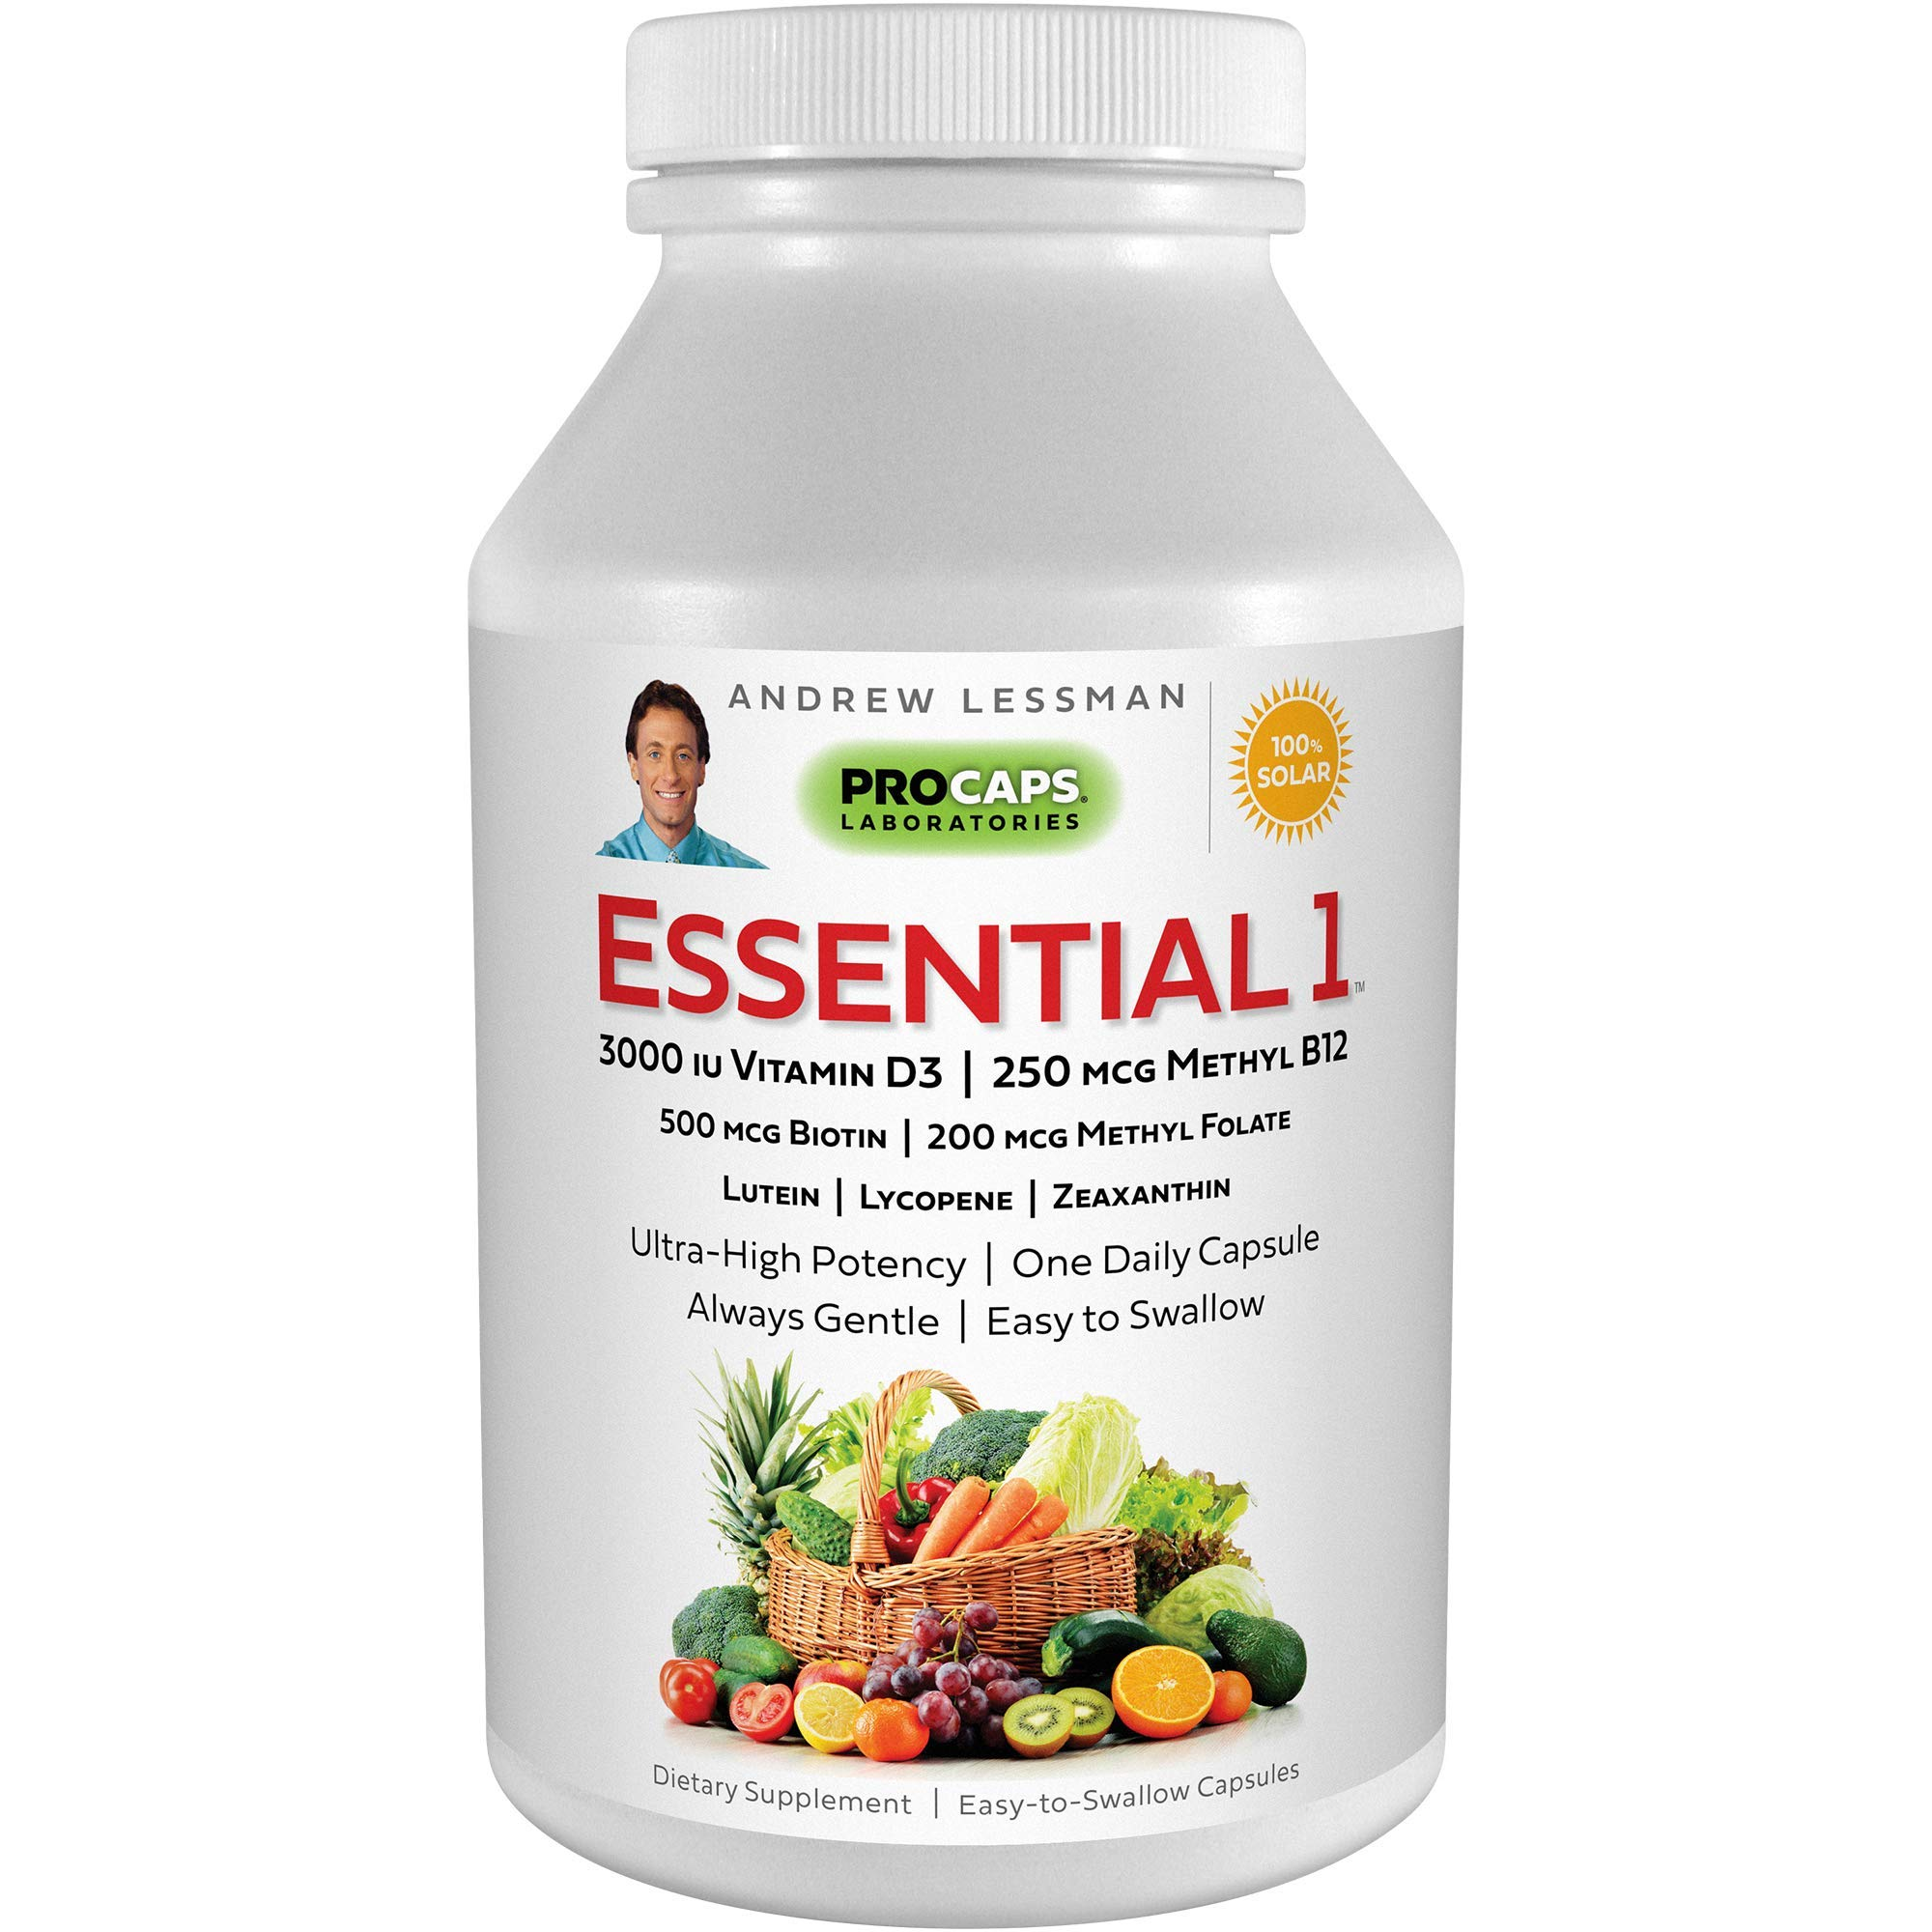 Andrew Lessman Essential-1 Multivitamin 3000 IU Vitamin D3 180 Small Capsules – 250 mcg Methyl B12. Lutein Lycopene Zeaxanthin. 24+ Nutrients. High Potency. No Additives. Ultra-Mild Only One Cap Daily